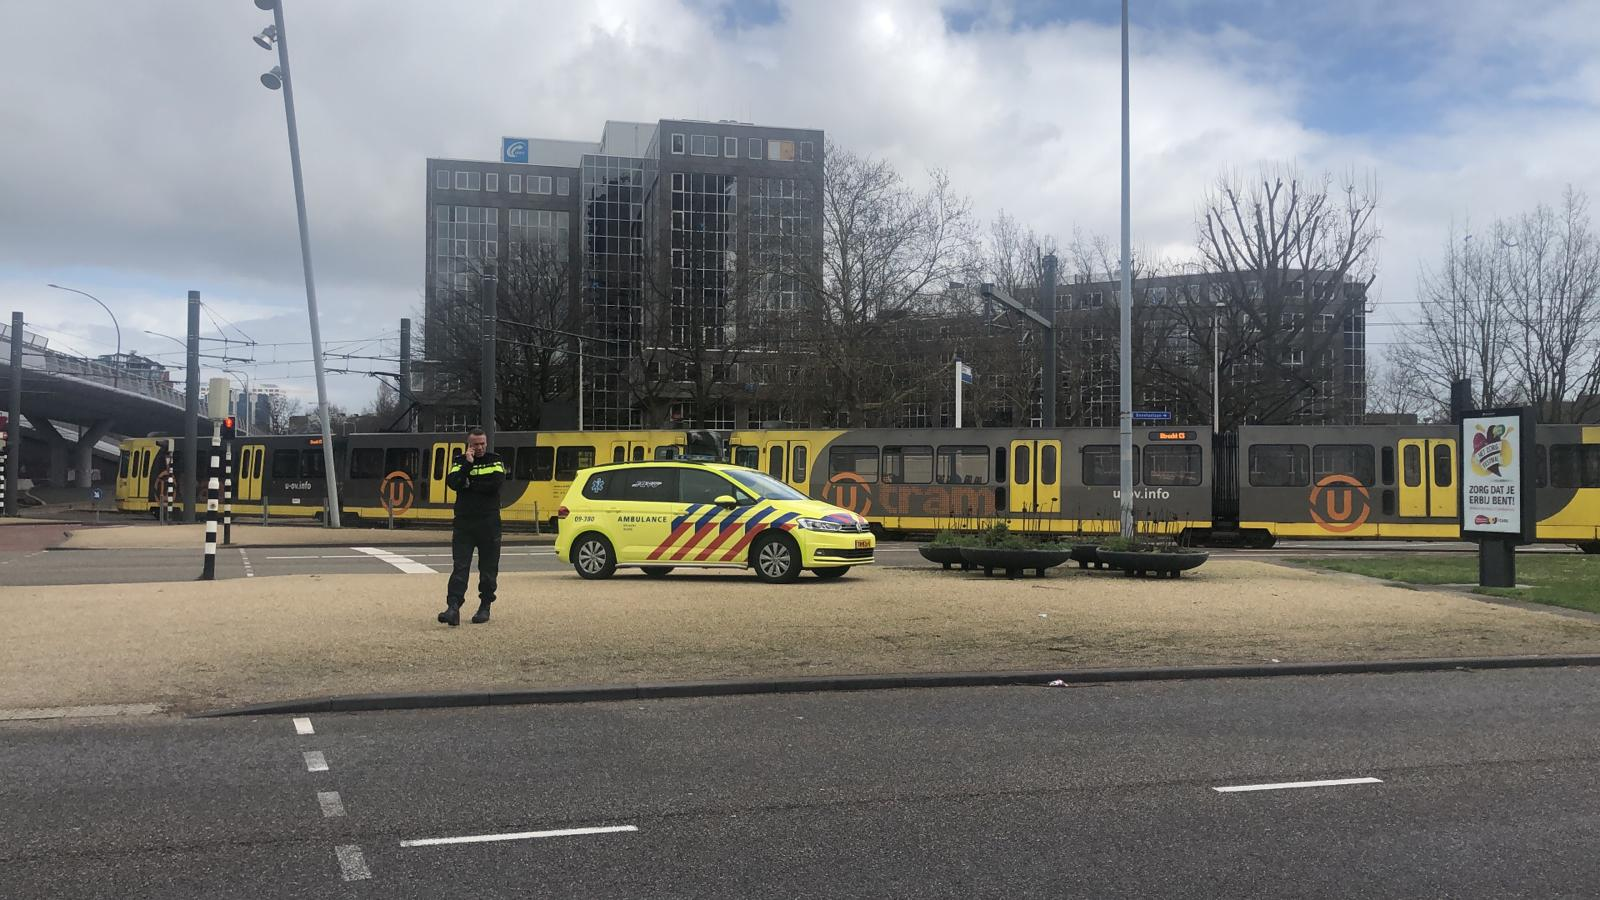 The scene in Utrecht was quickly locked down by police and emergency responders.